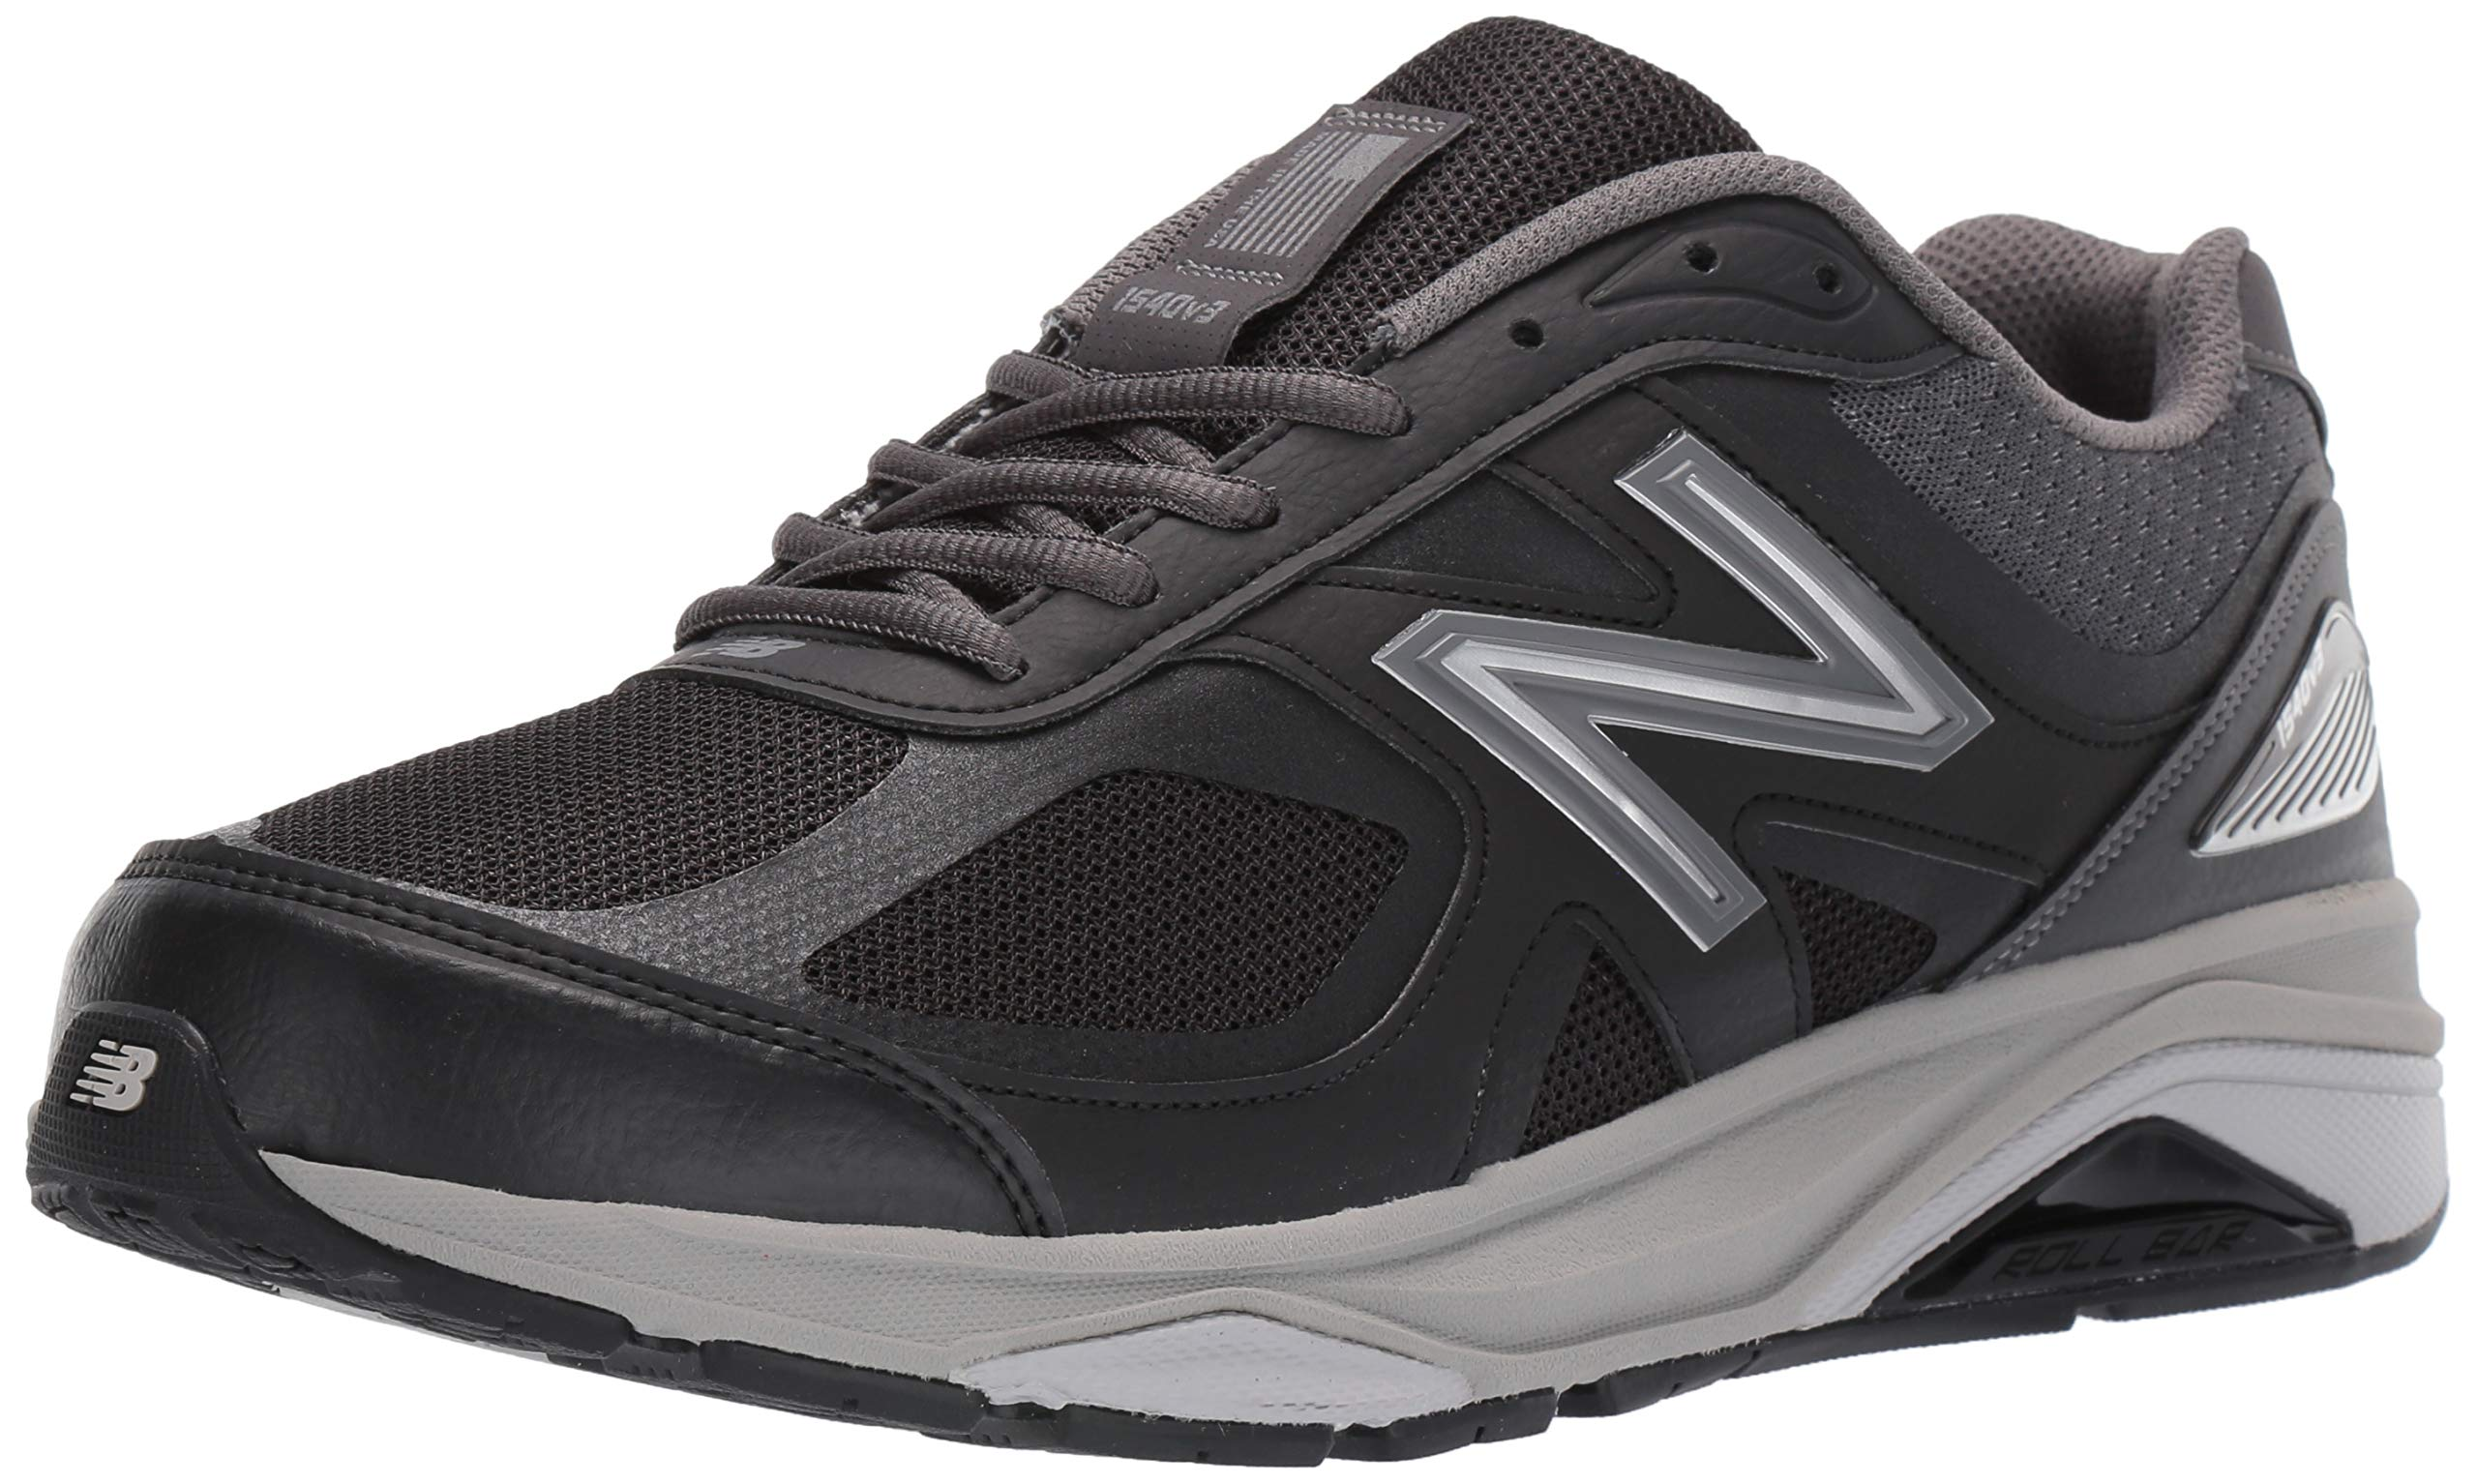 New Balance Men's 1540v3 Running Shoe, Black/Castlerock, 7 XXW US